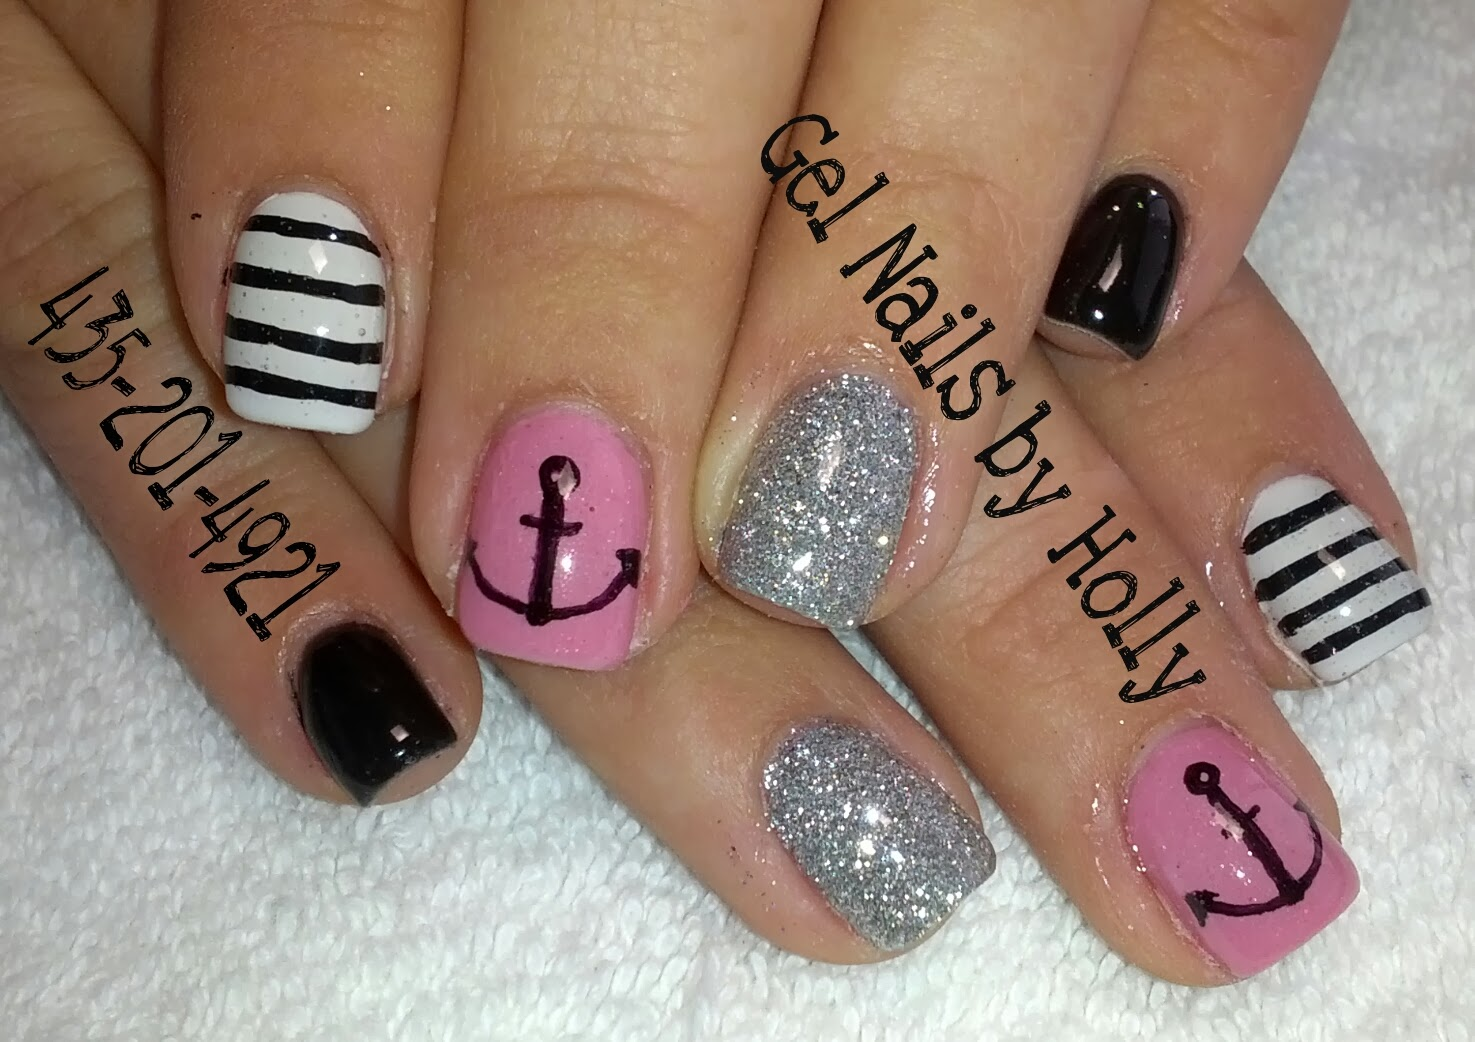 gel nails washington utah | gel nails and toesholly 435-709-toes